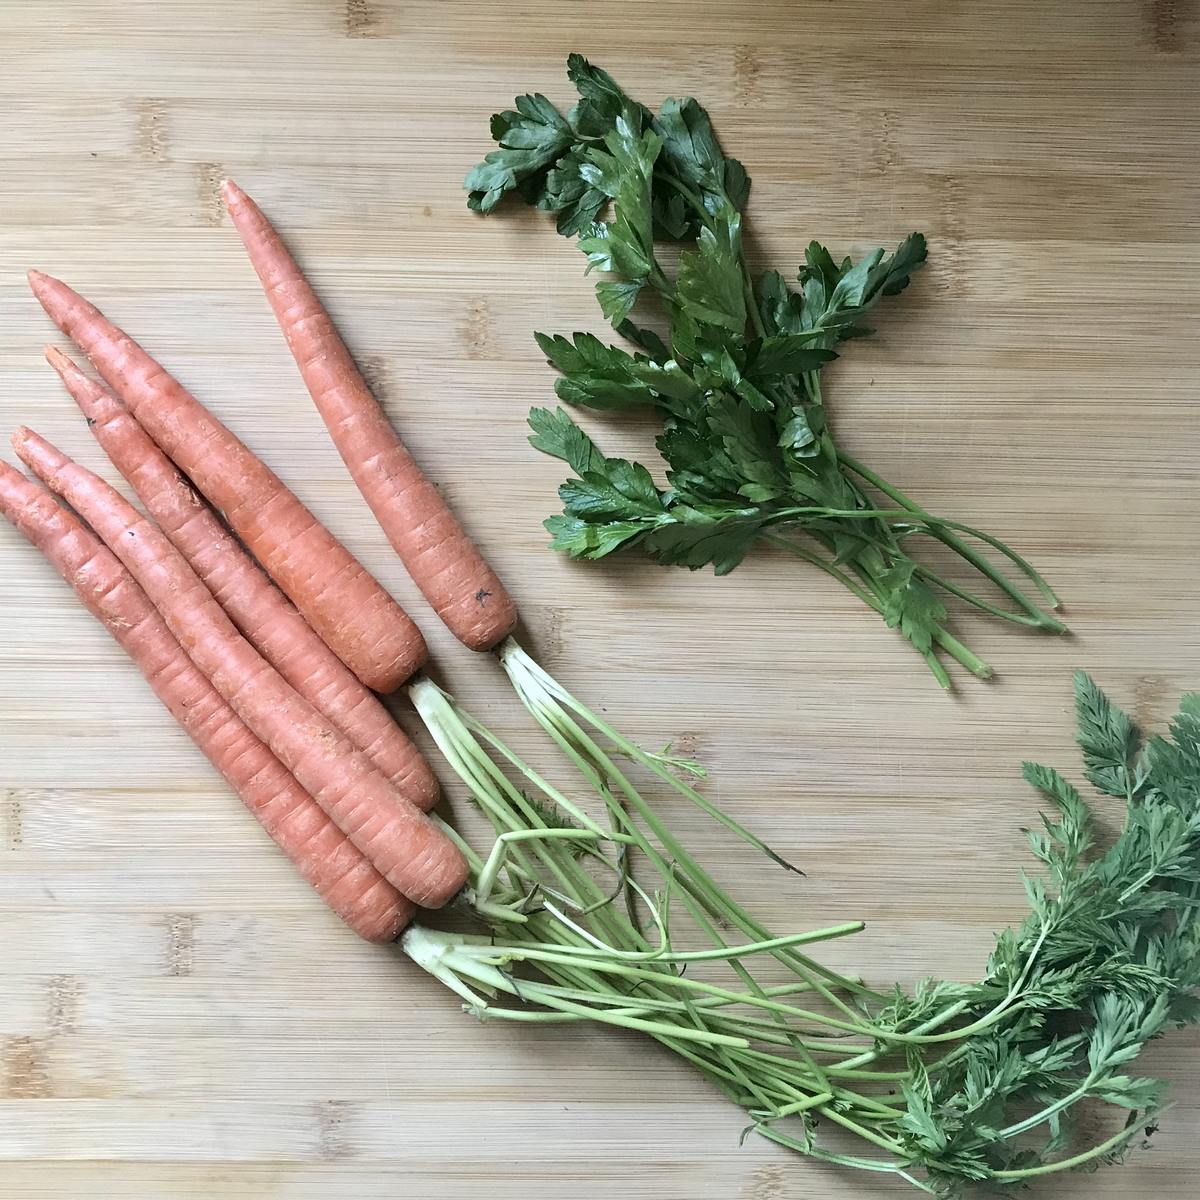 A bunch of carrots and parsley on a wooden board.